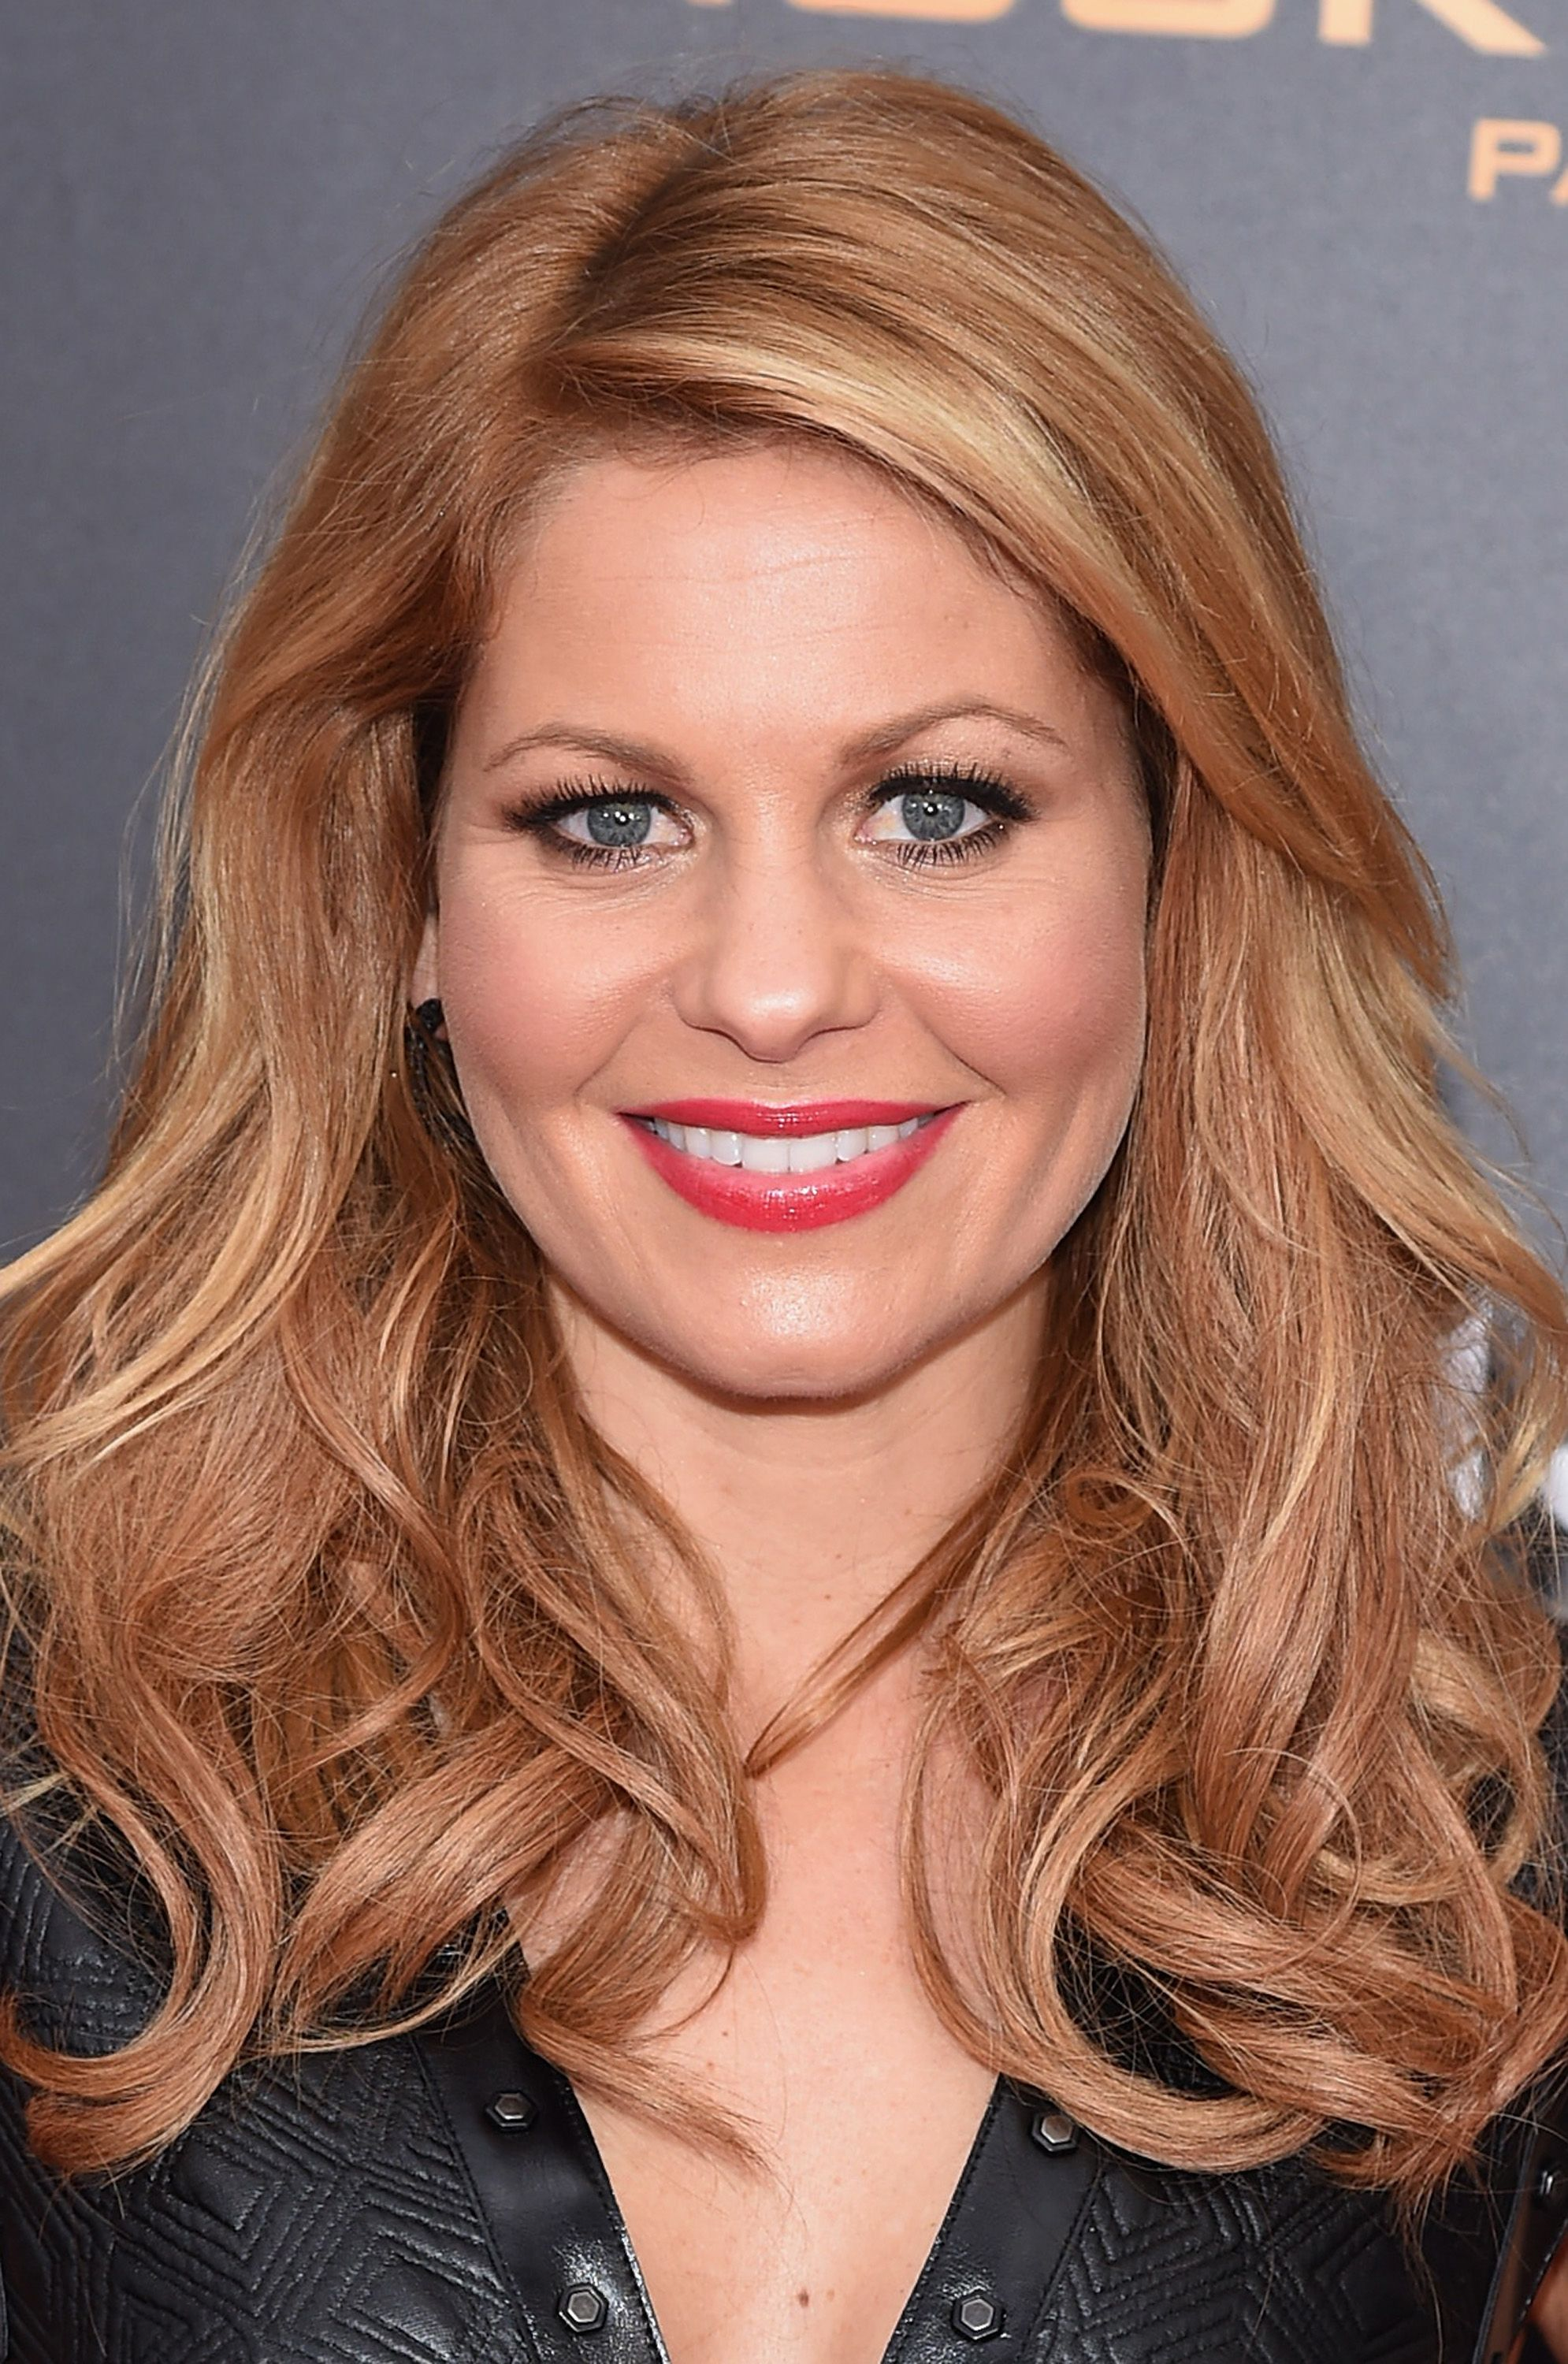 Candace Cameron Bure's Family Throws Her a Surprise 40th Birthday Party - Closer Weekly